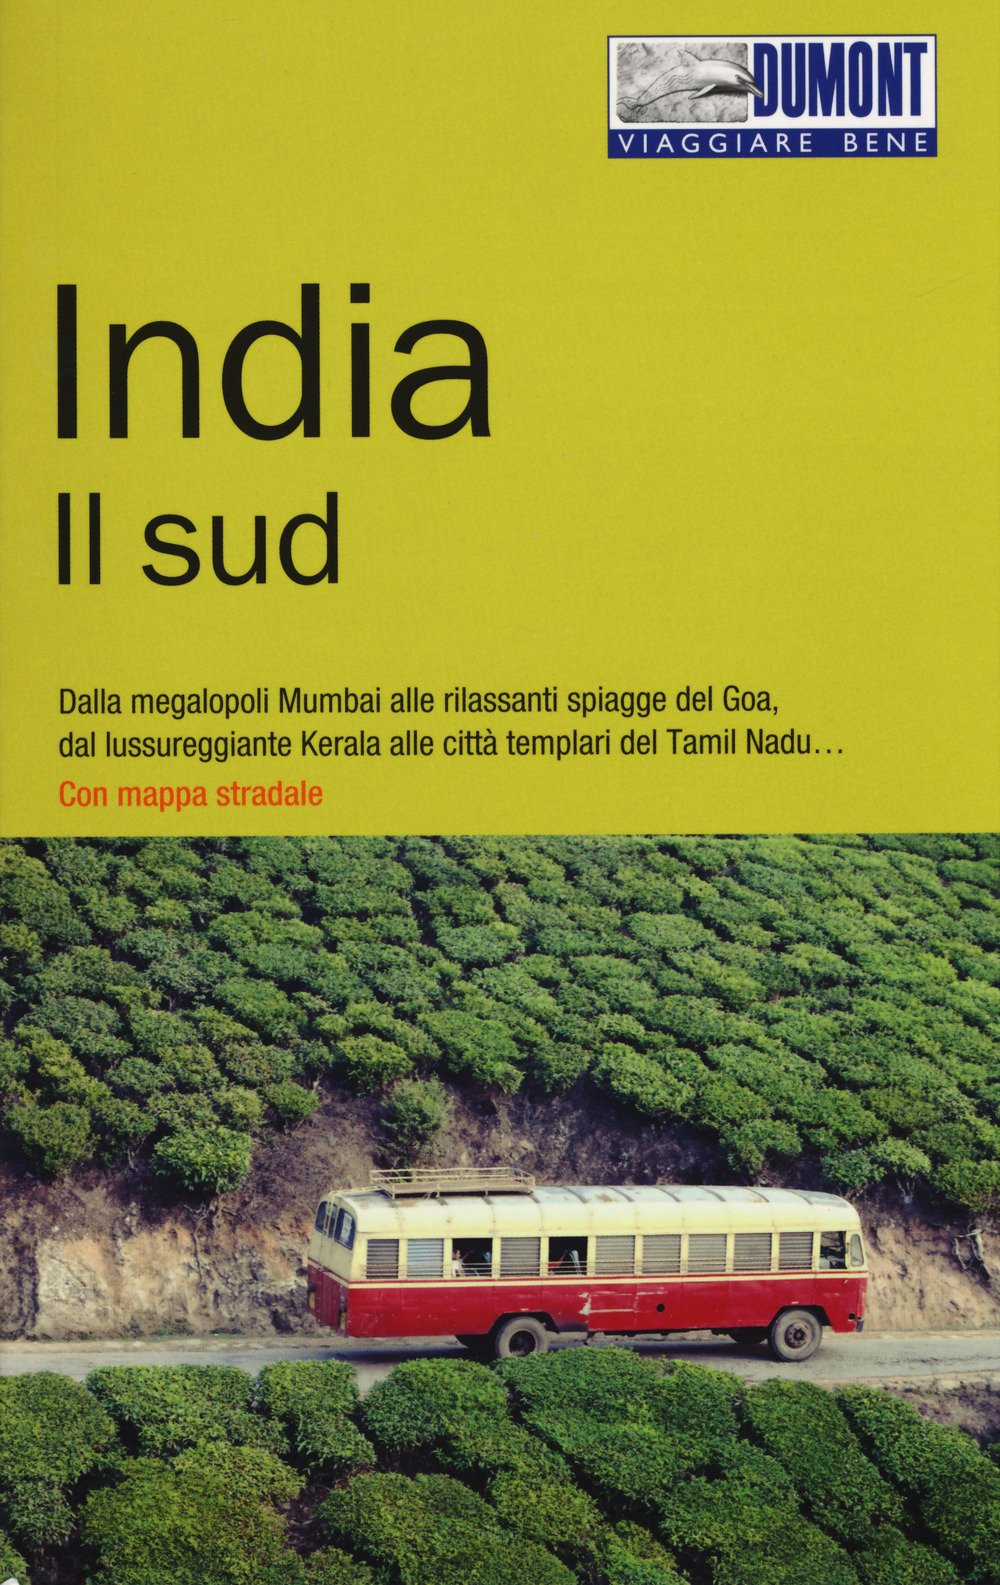 Cartina Geografica India Del Sud.Amazon It India Il Sud Con Carta Geografica Ripiegata Schreitmuller Karen Libri